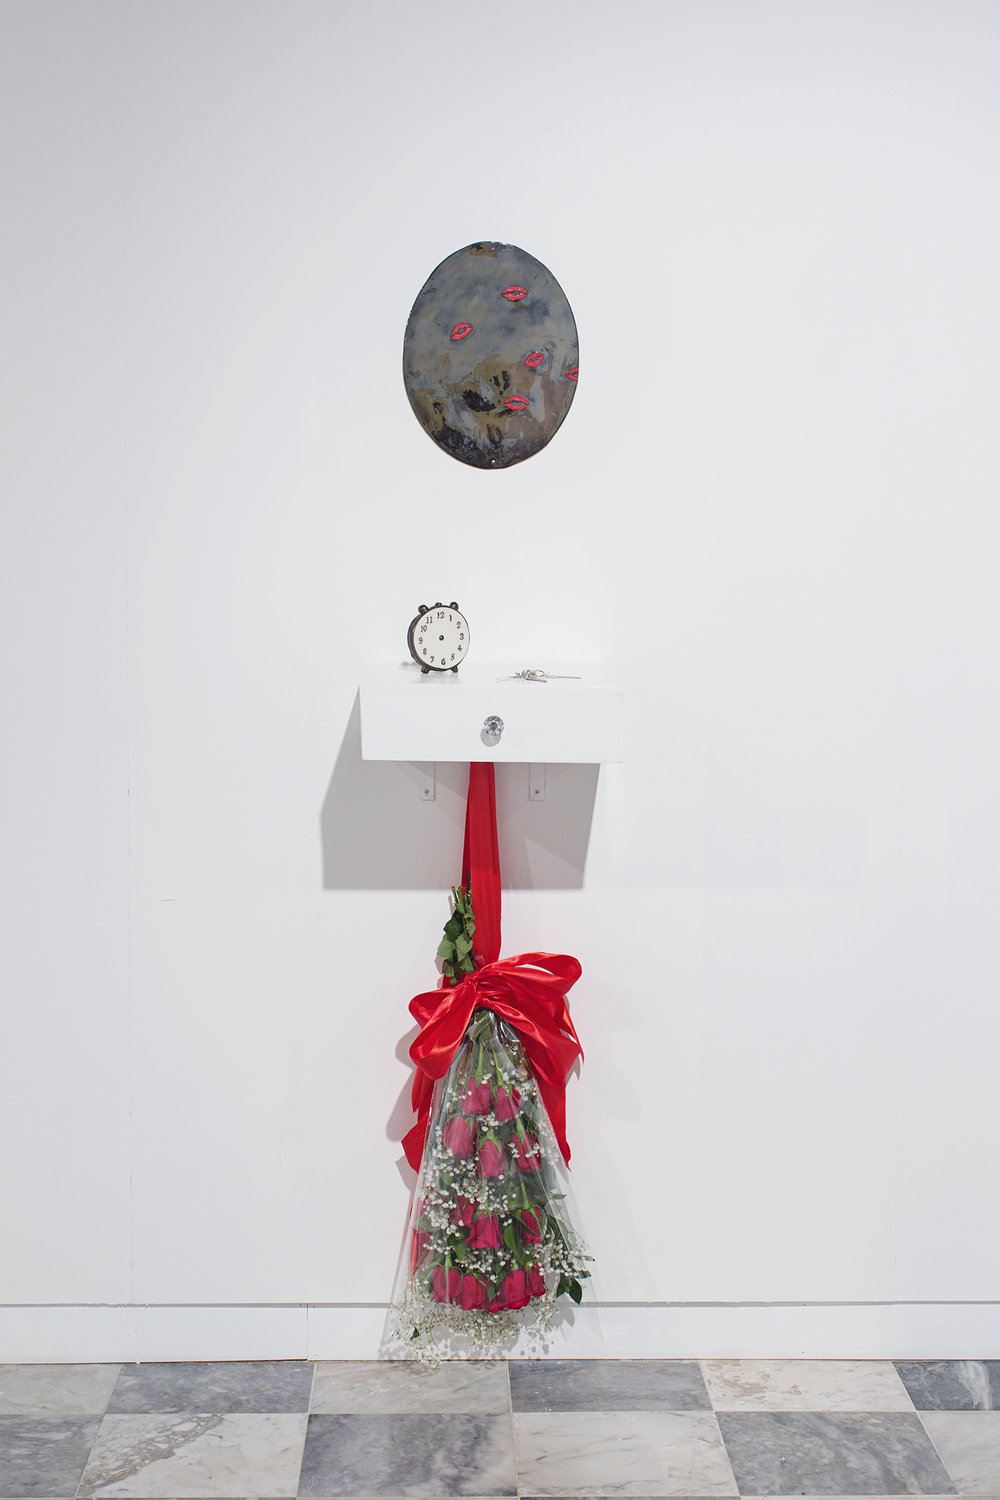 """Denise Quiñones, Miss Universe 2001, 2018   Porcelain mirror, porcelain clock without hands, mother of pearl, red abalone, black mother of pearl carved keys on vanity, red roses, silk, cellophane, baby's breath, hardware Porcelain mirror 14 x 8"""" (35.6 x 20.3 cm), vanity shelf 12 x 15 x 4.5"""" (30.5 x 38 x 11.4 cm)  Overall dimensions variable"""